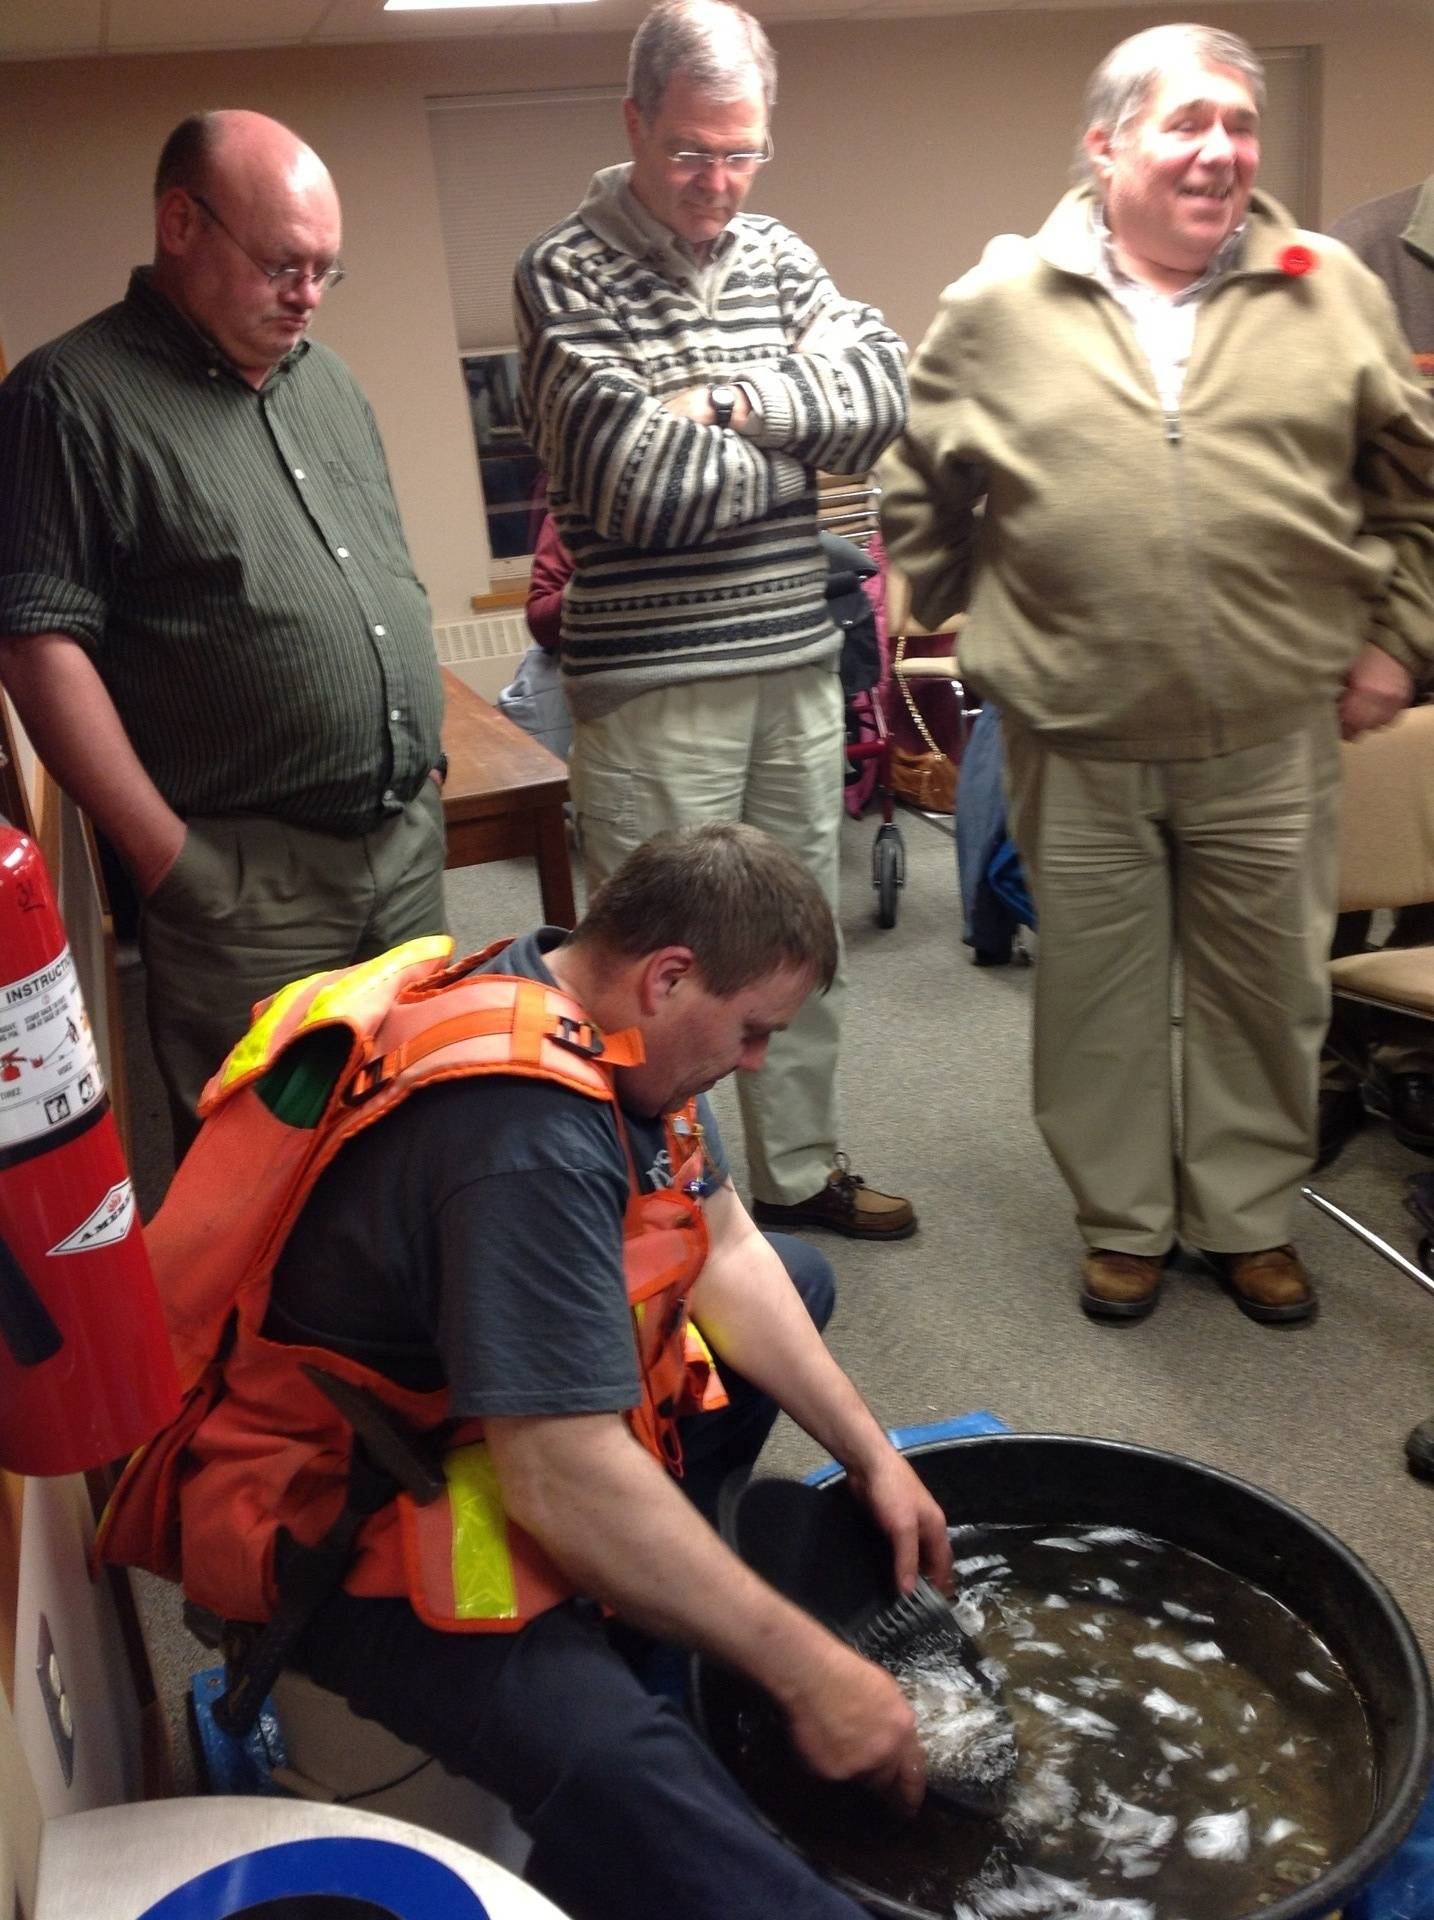 Members look on as gold panning is demonstrated in a small tub